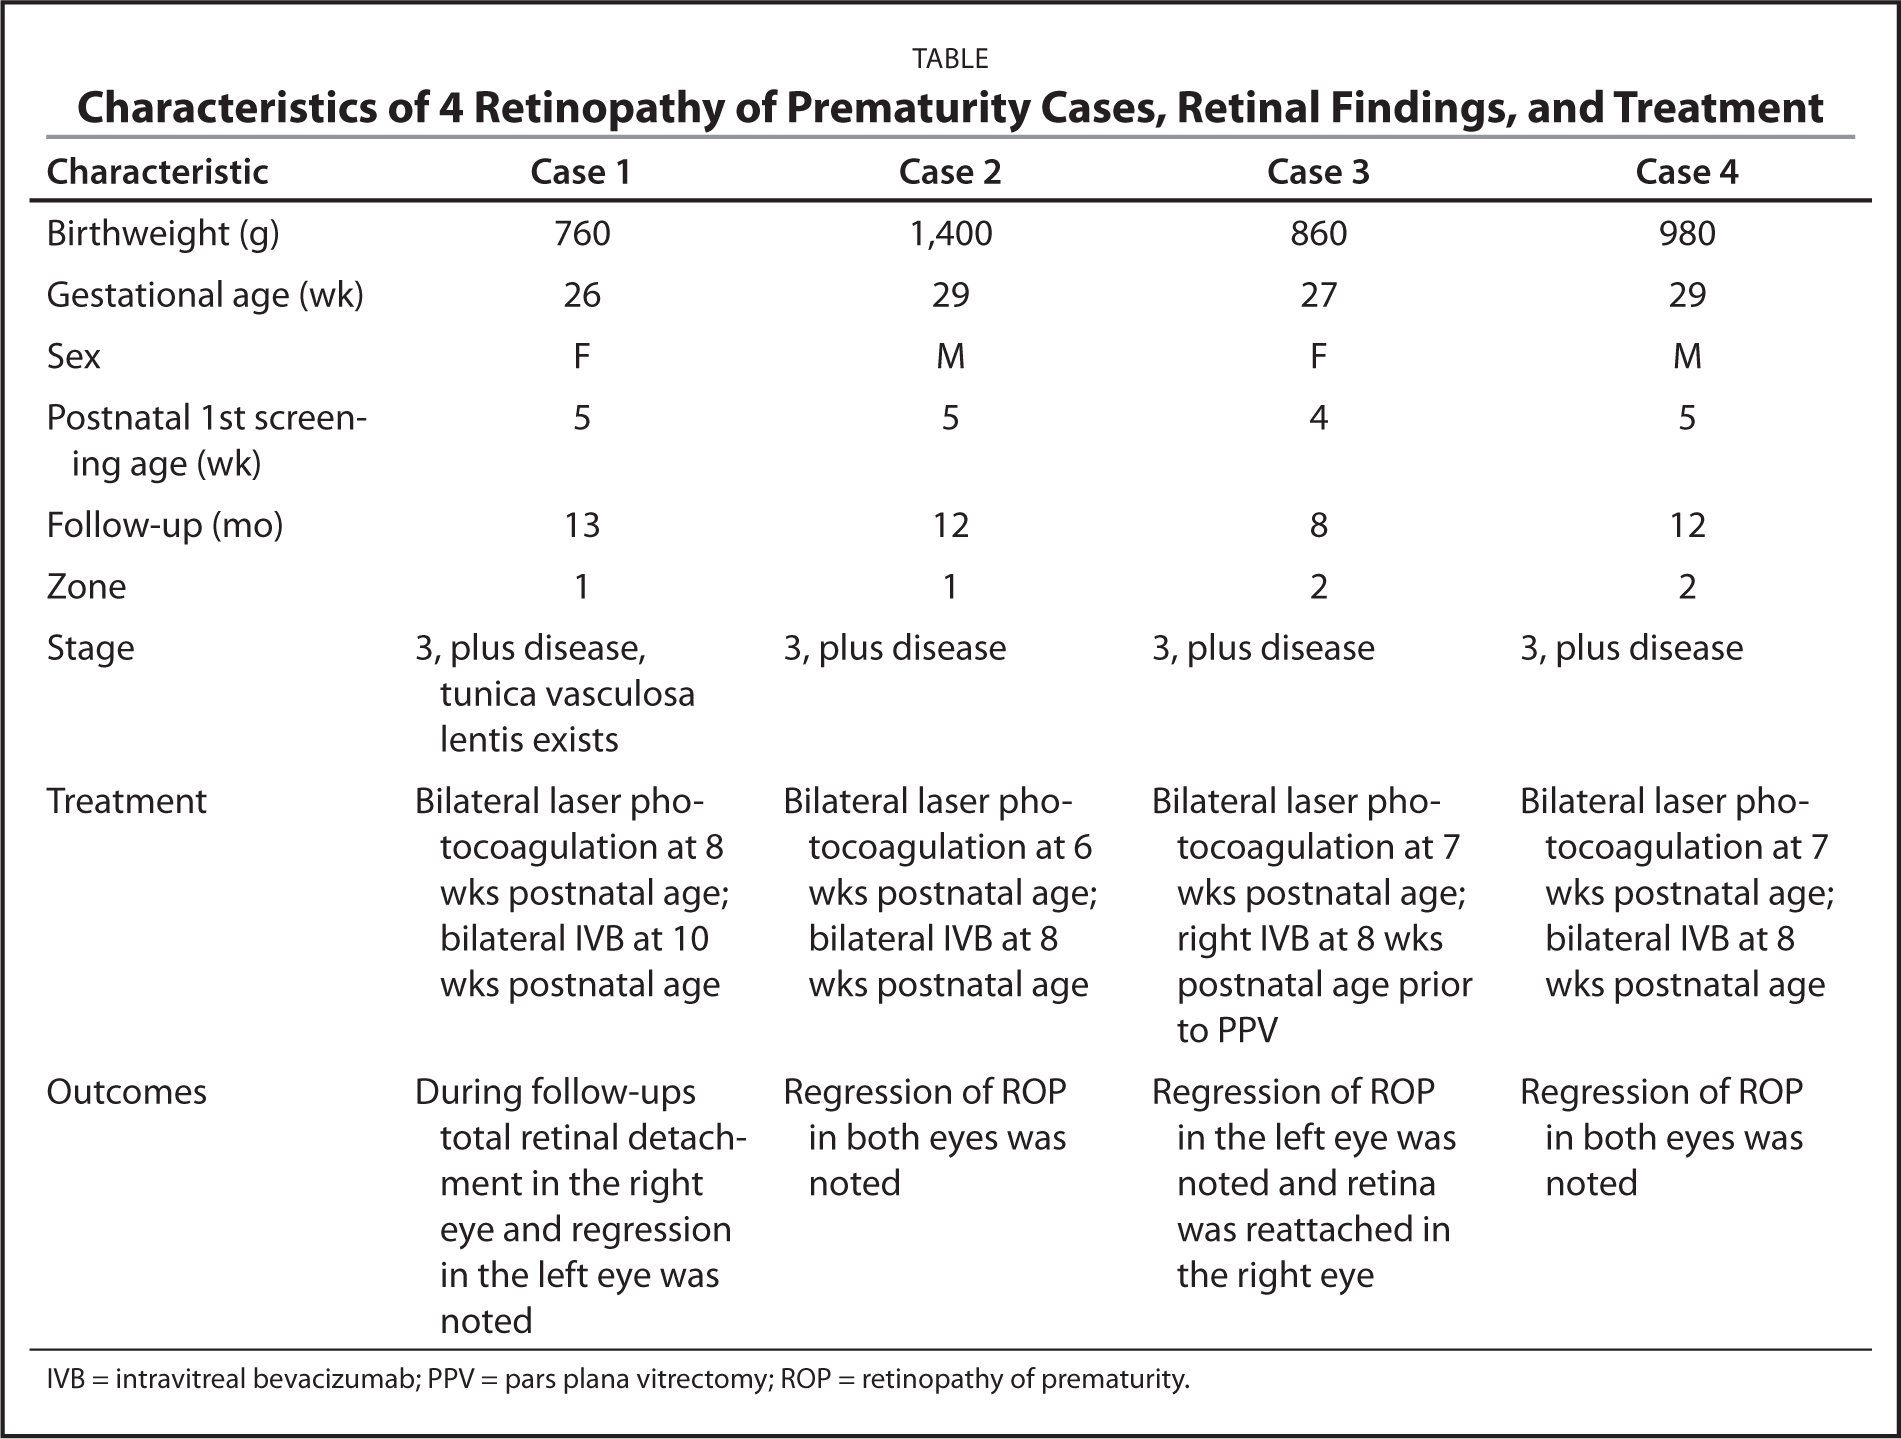 Characteristics of 4 Retinopathy of Prematurity Cases, Retinal Findings, and Treatment